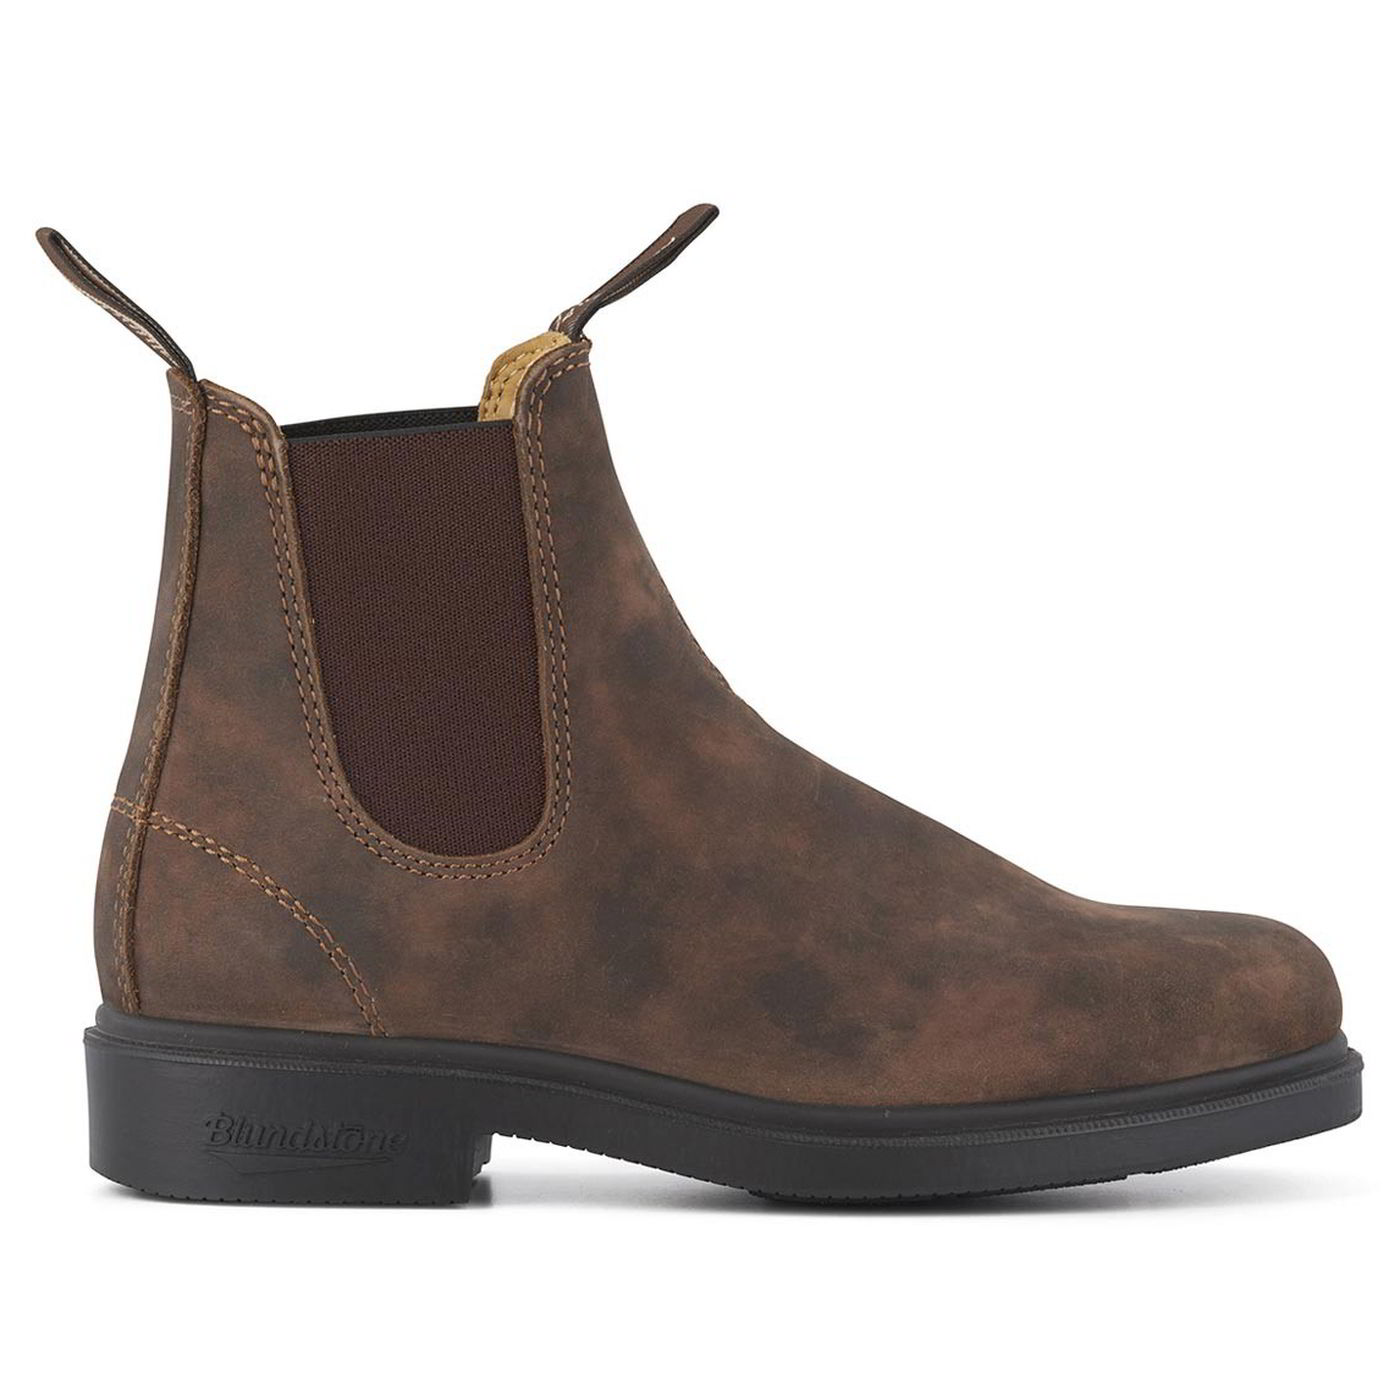 Design your own RM Williams boots   Fashion, Chelsea boots